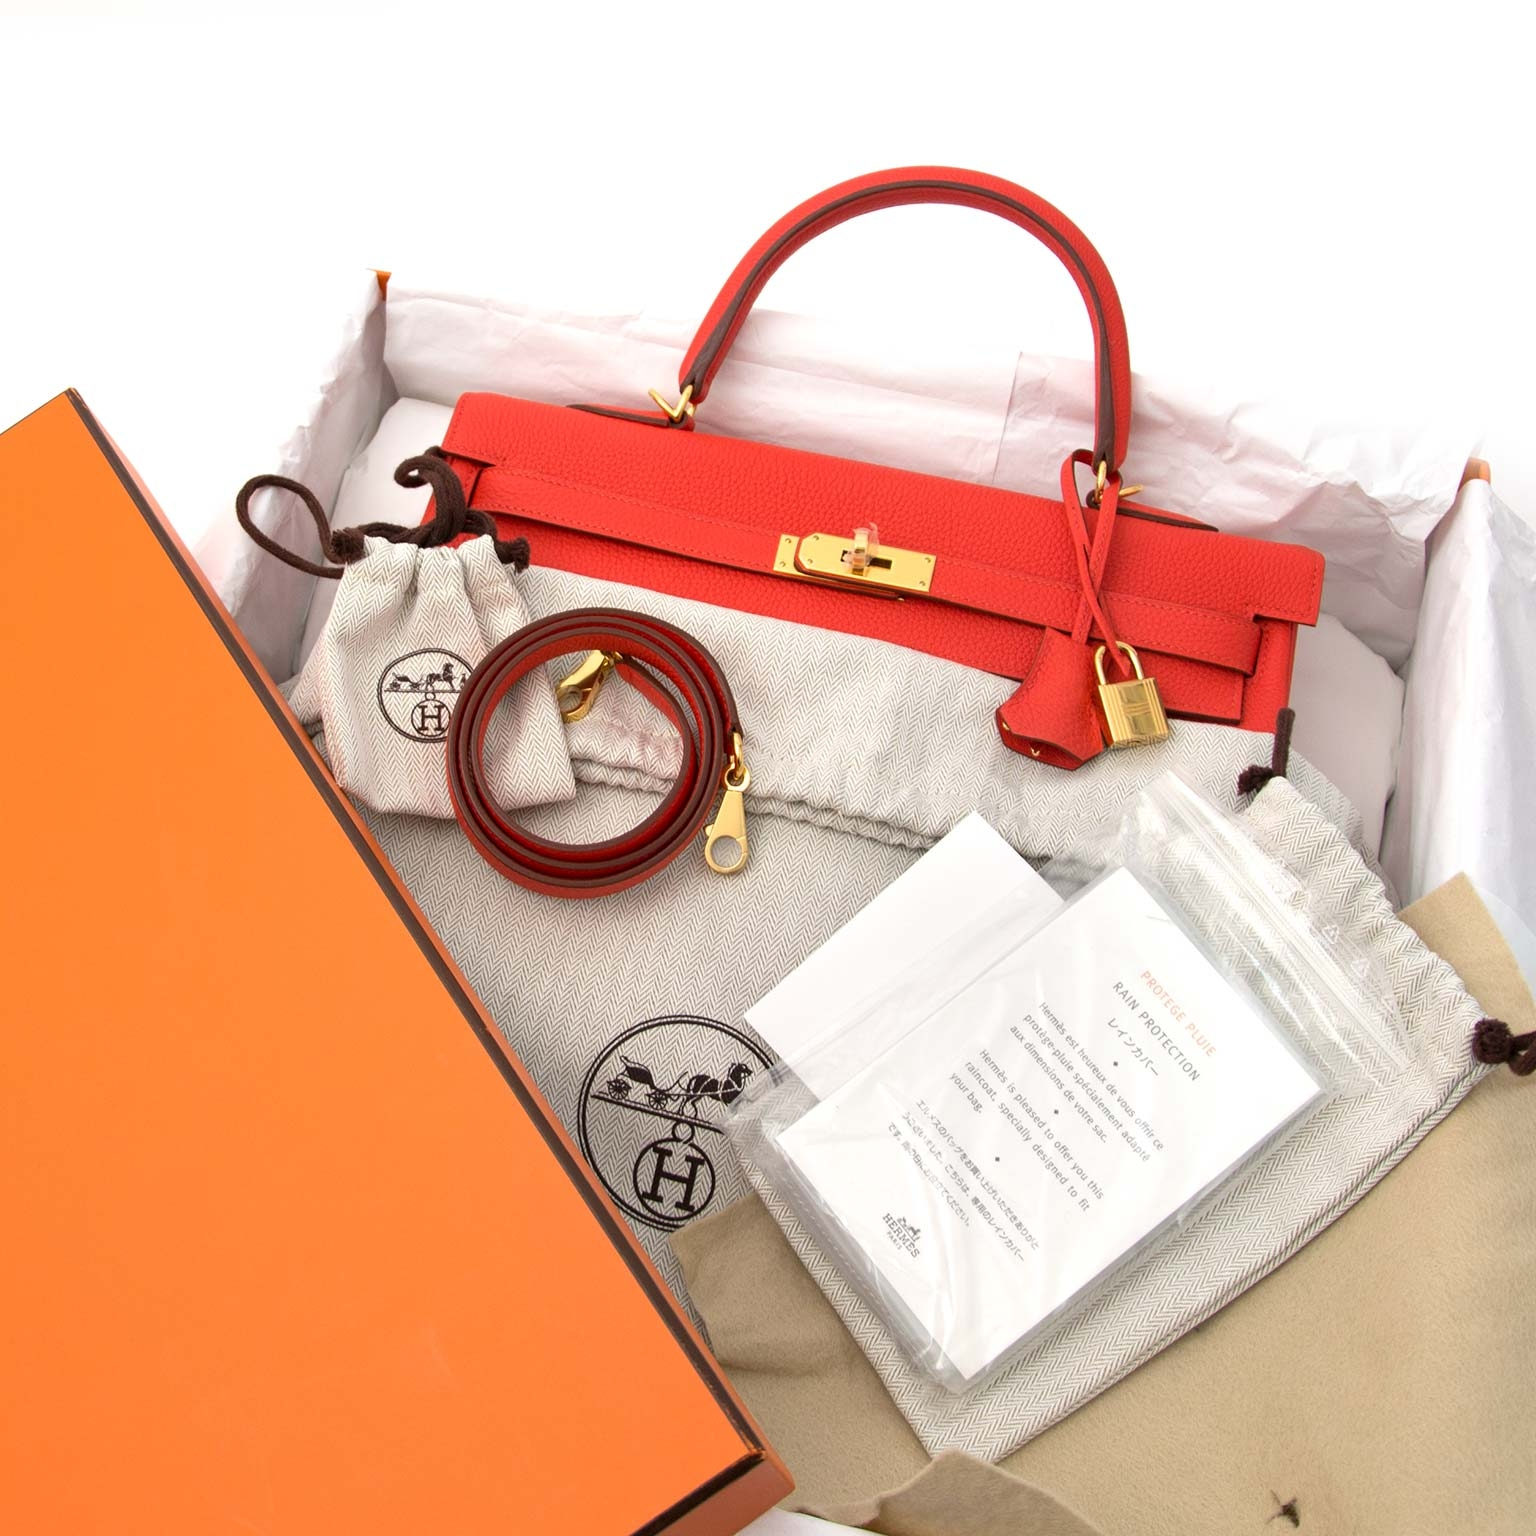 9cadba7f0095 ... buy safe and secure acheter en ligne chez labellov.com Hermès Kelly 35  Togo Capucine GHW 100% authentique